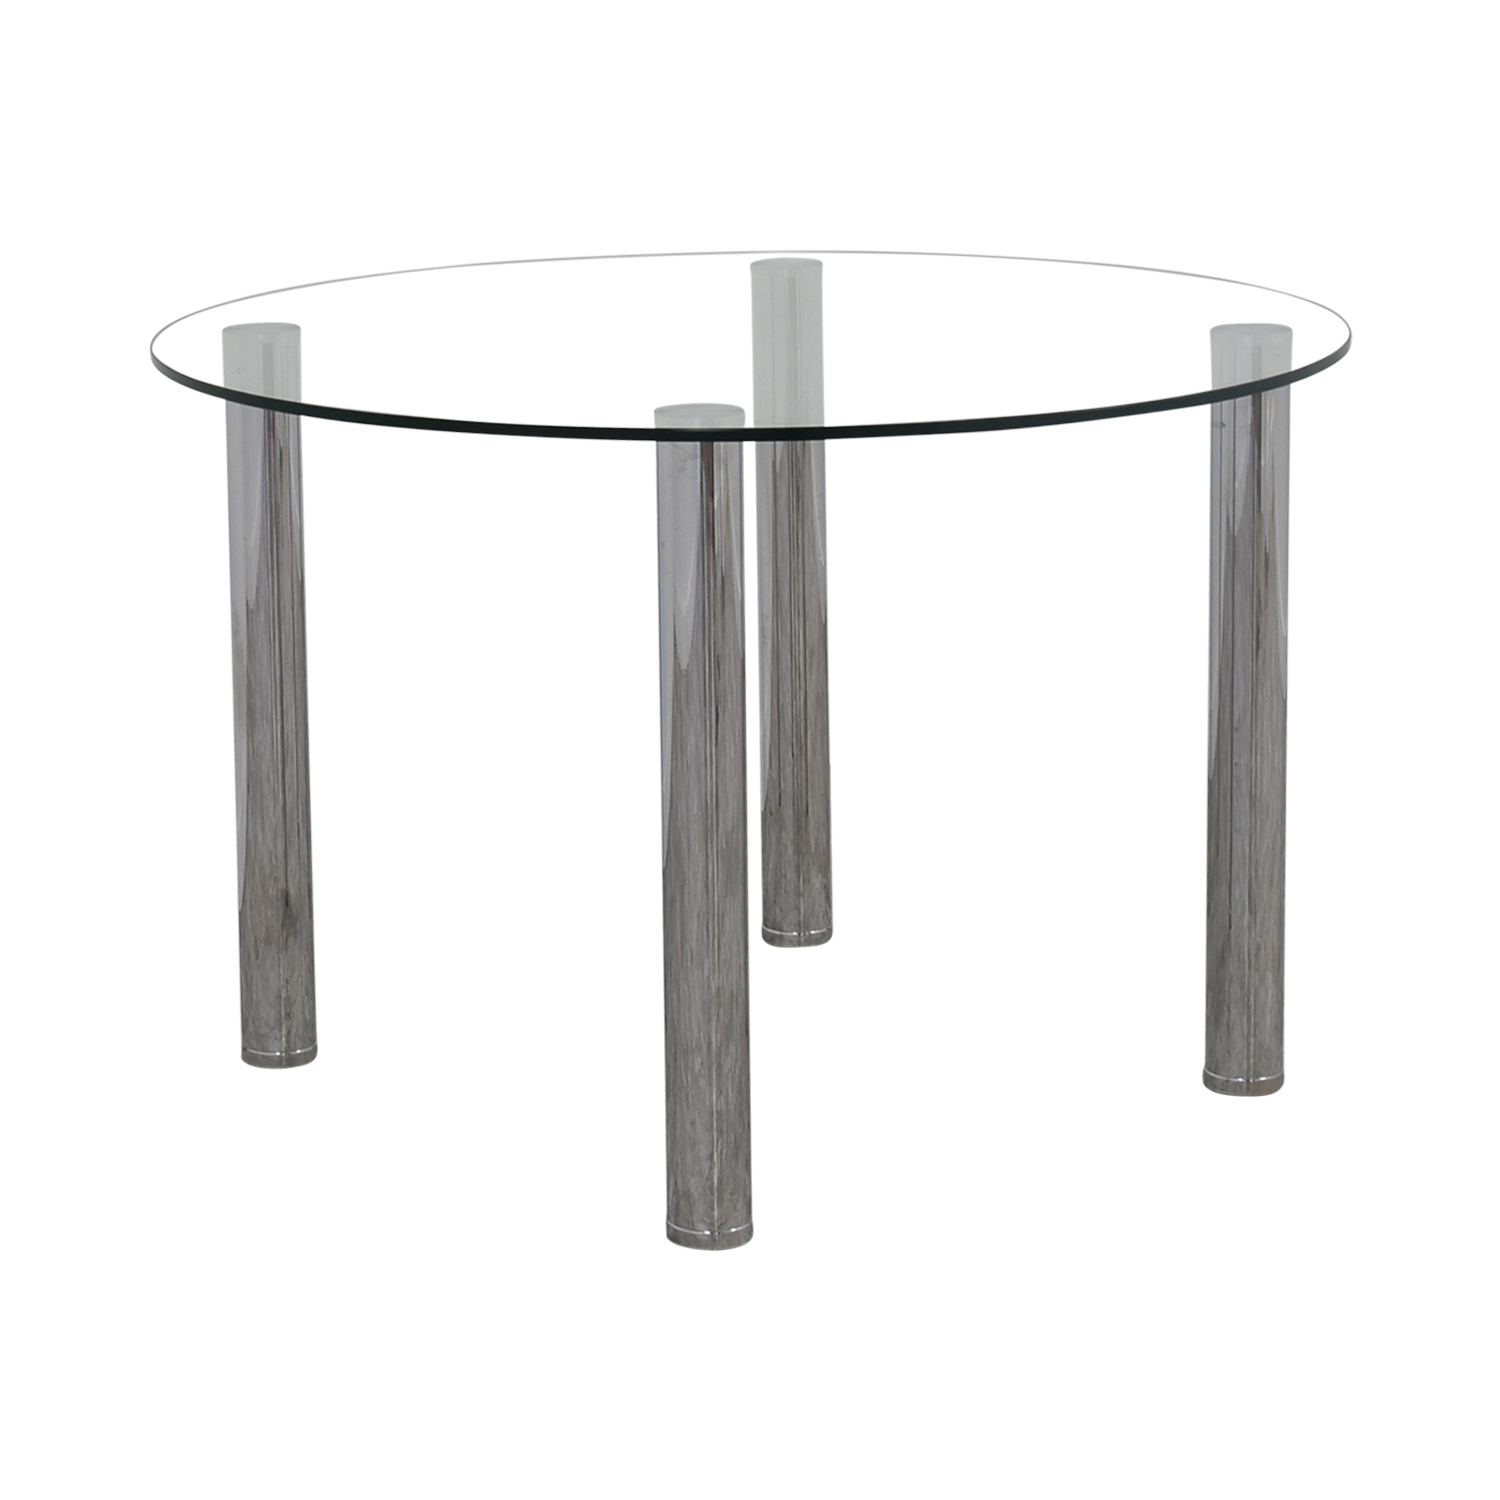 90 off round glass and chrome table tables for Round glass and chrome dining table